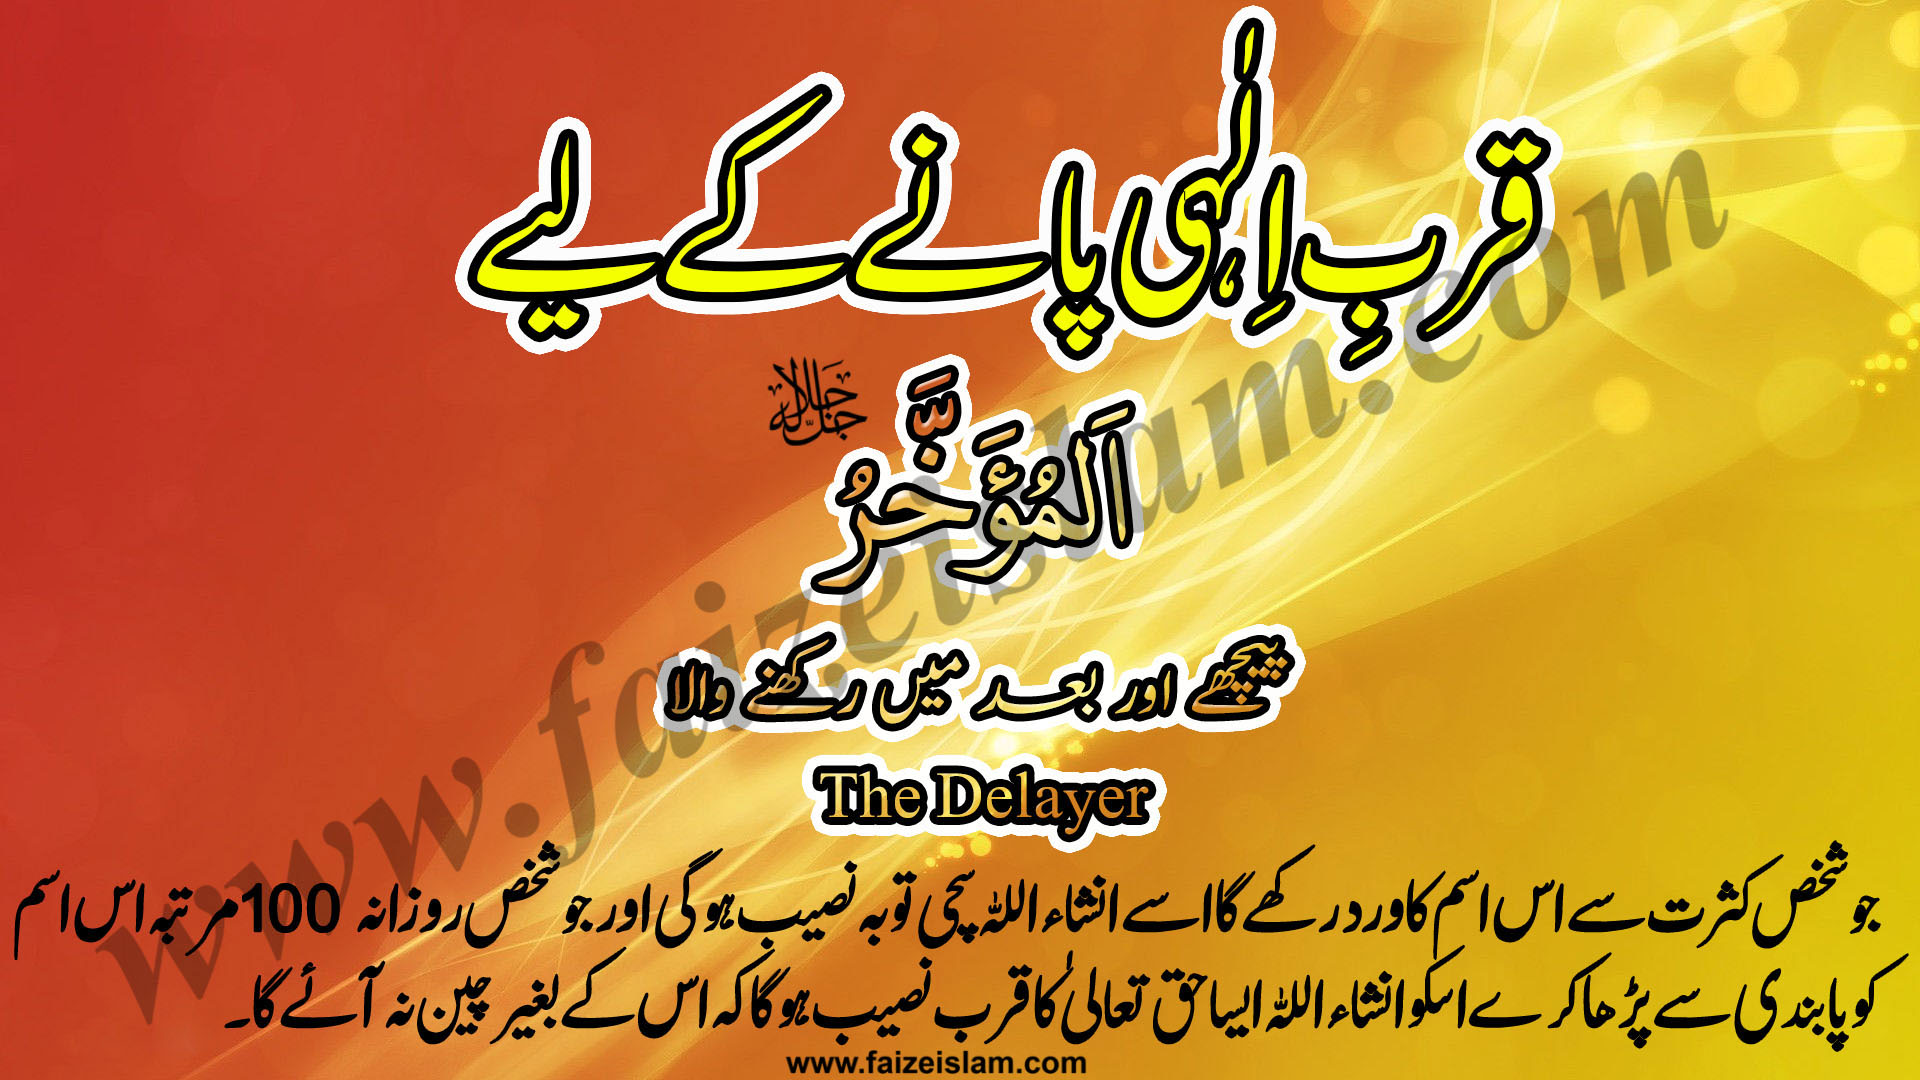 Photo of Qurb e Ilahi Panay Kay Liye Wazifa In Urdu